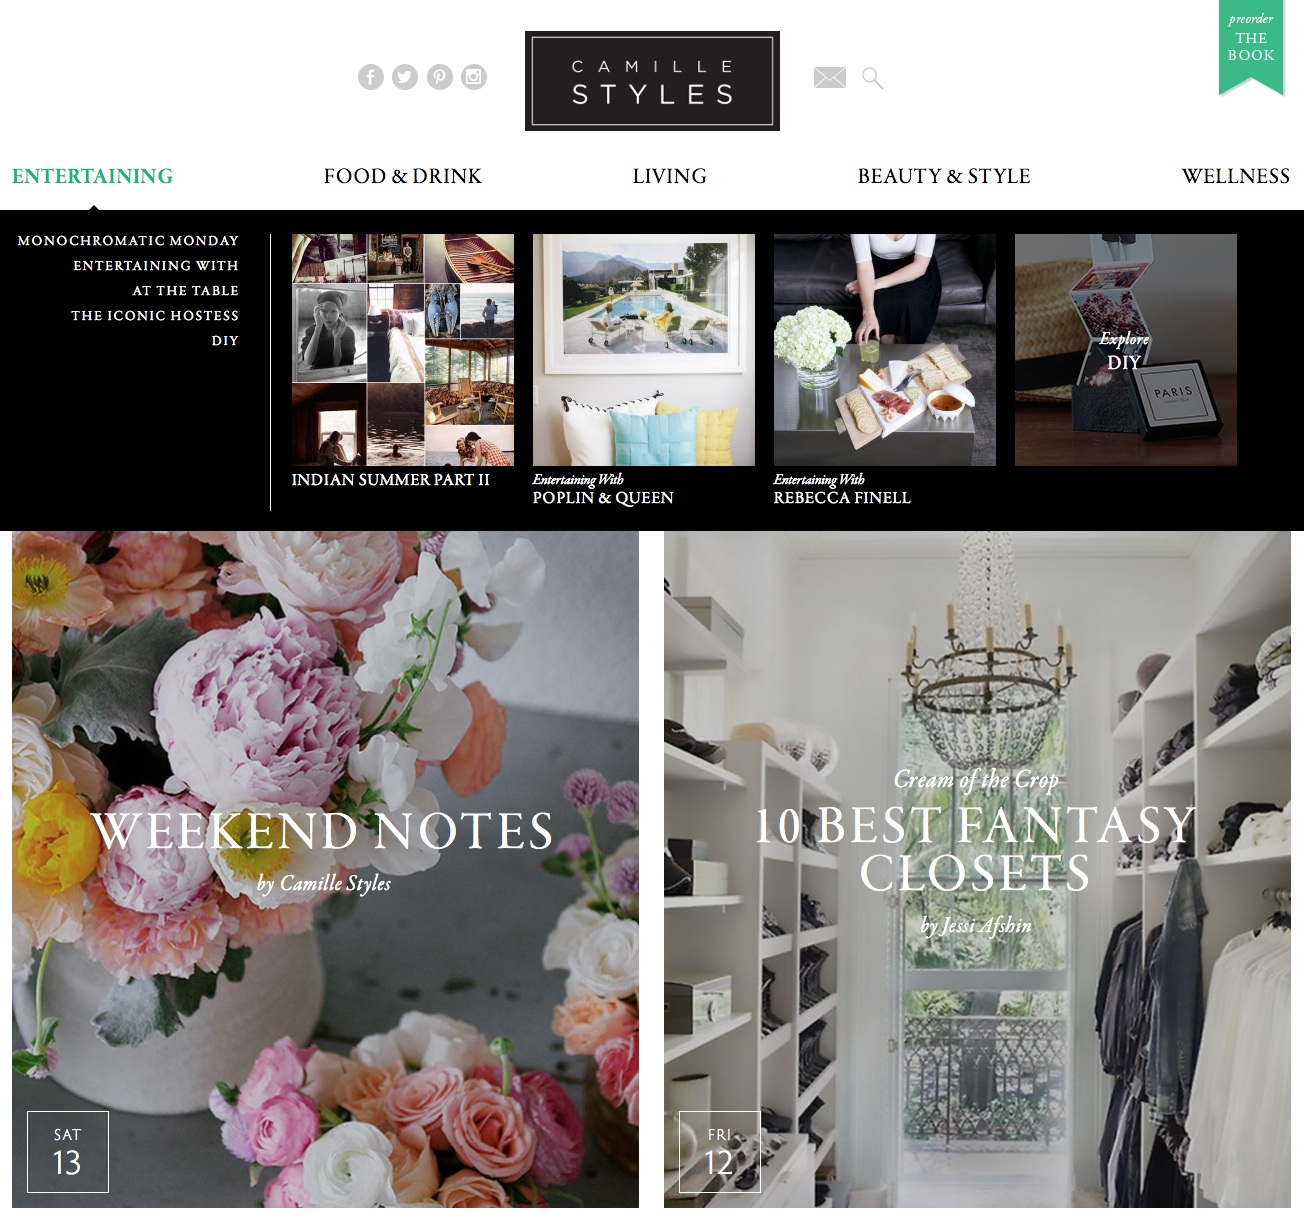 Our New Site Design | Camille Styles